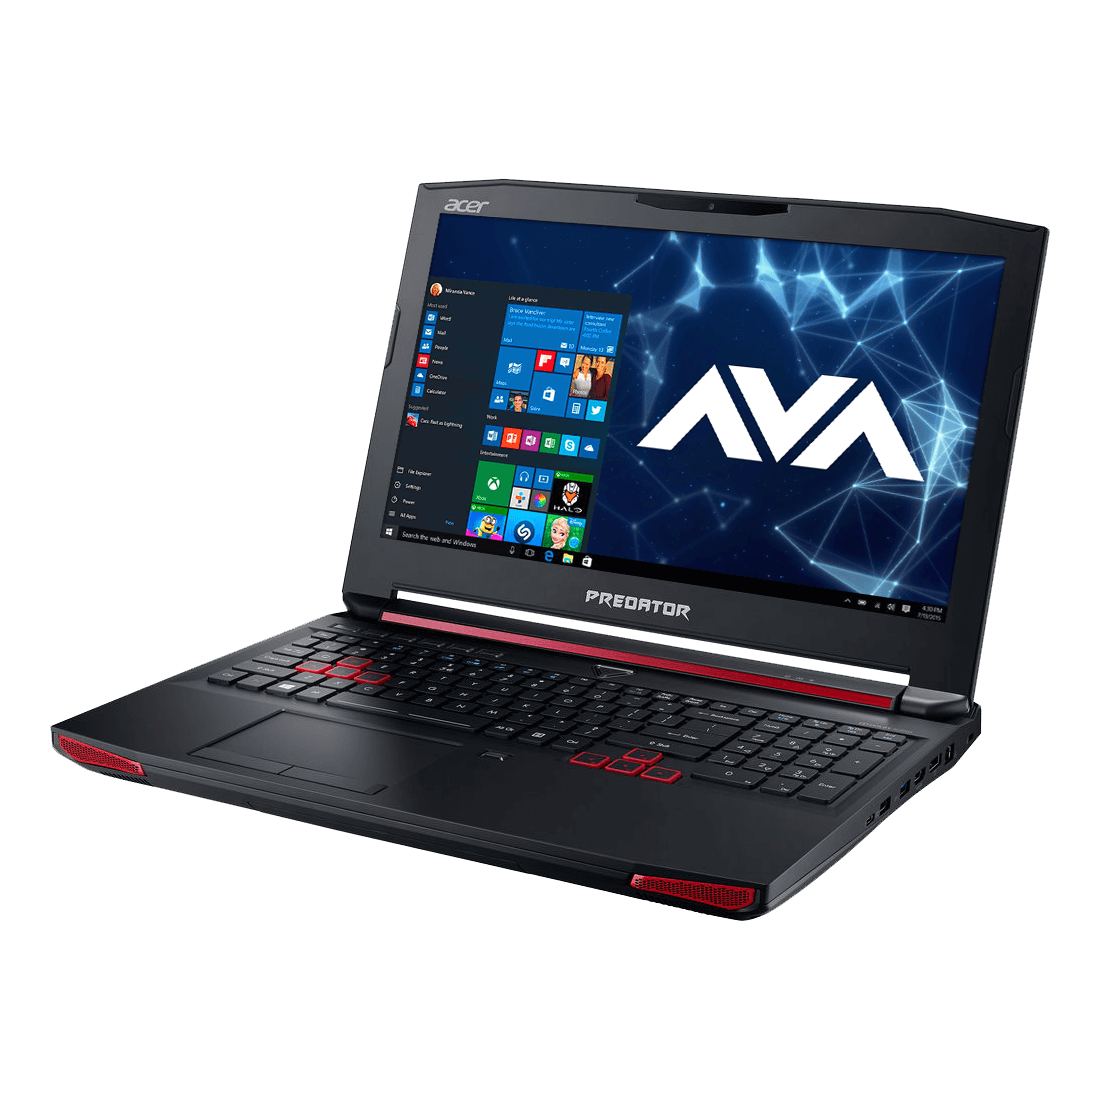 Gaming Laptop - Acer Predator 15 G9-591-70VM, Intel Core i7-6700HQ, Gaming Laptop, 15.6